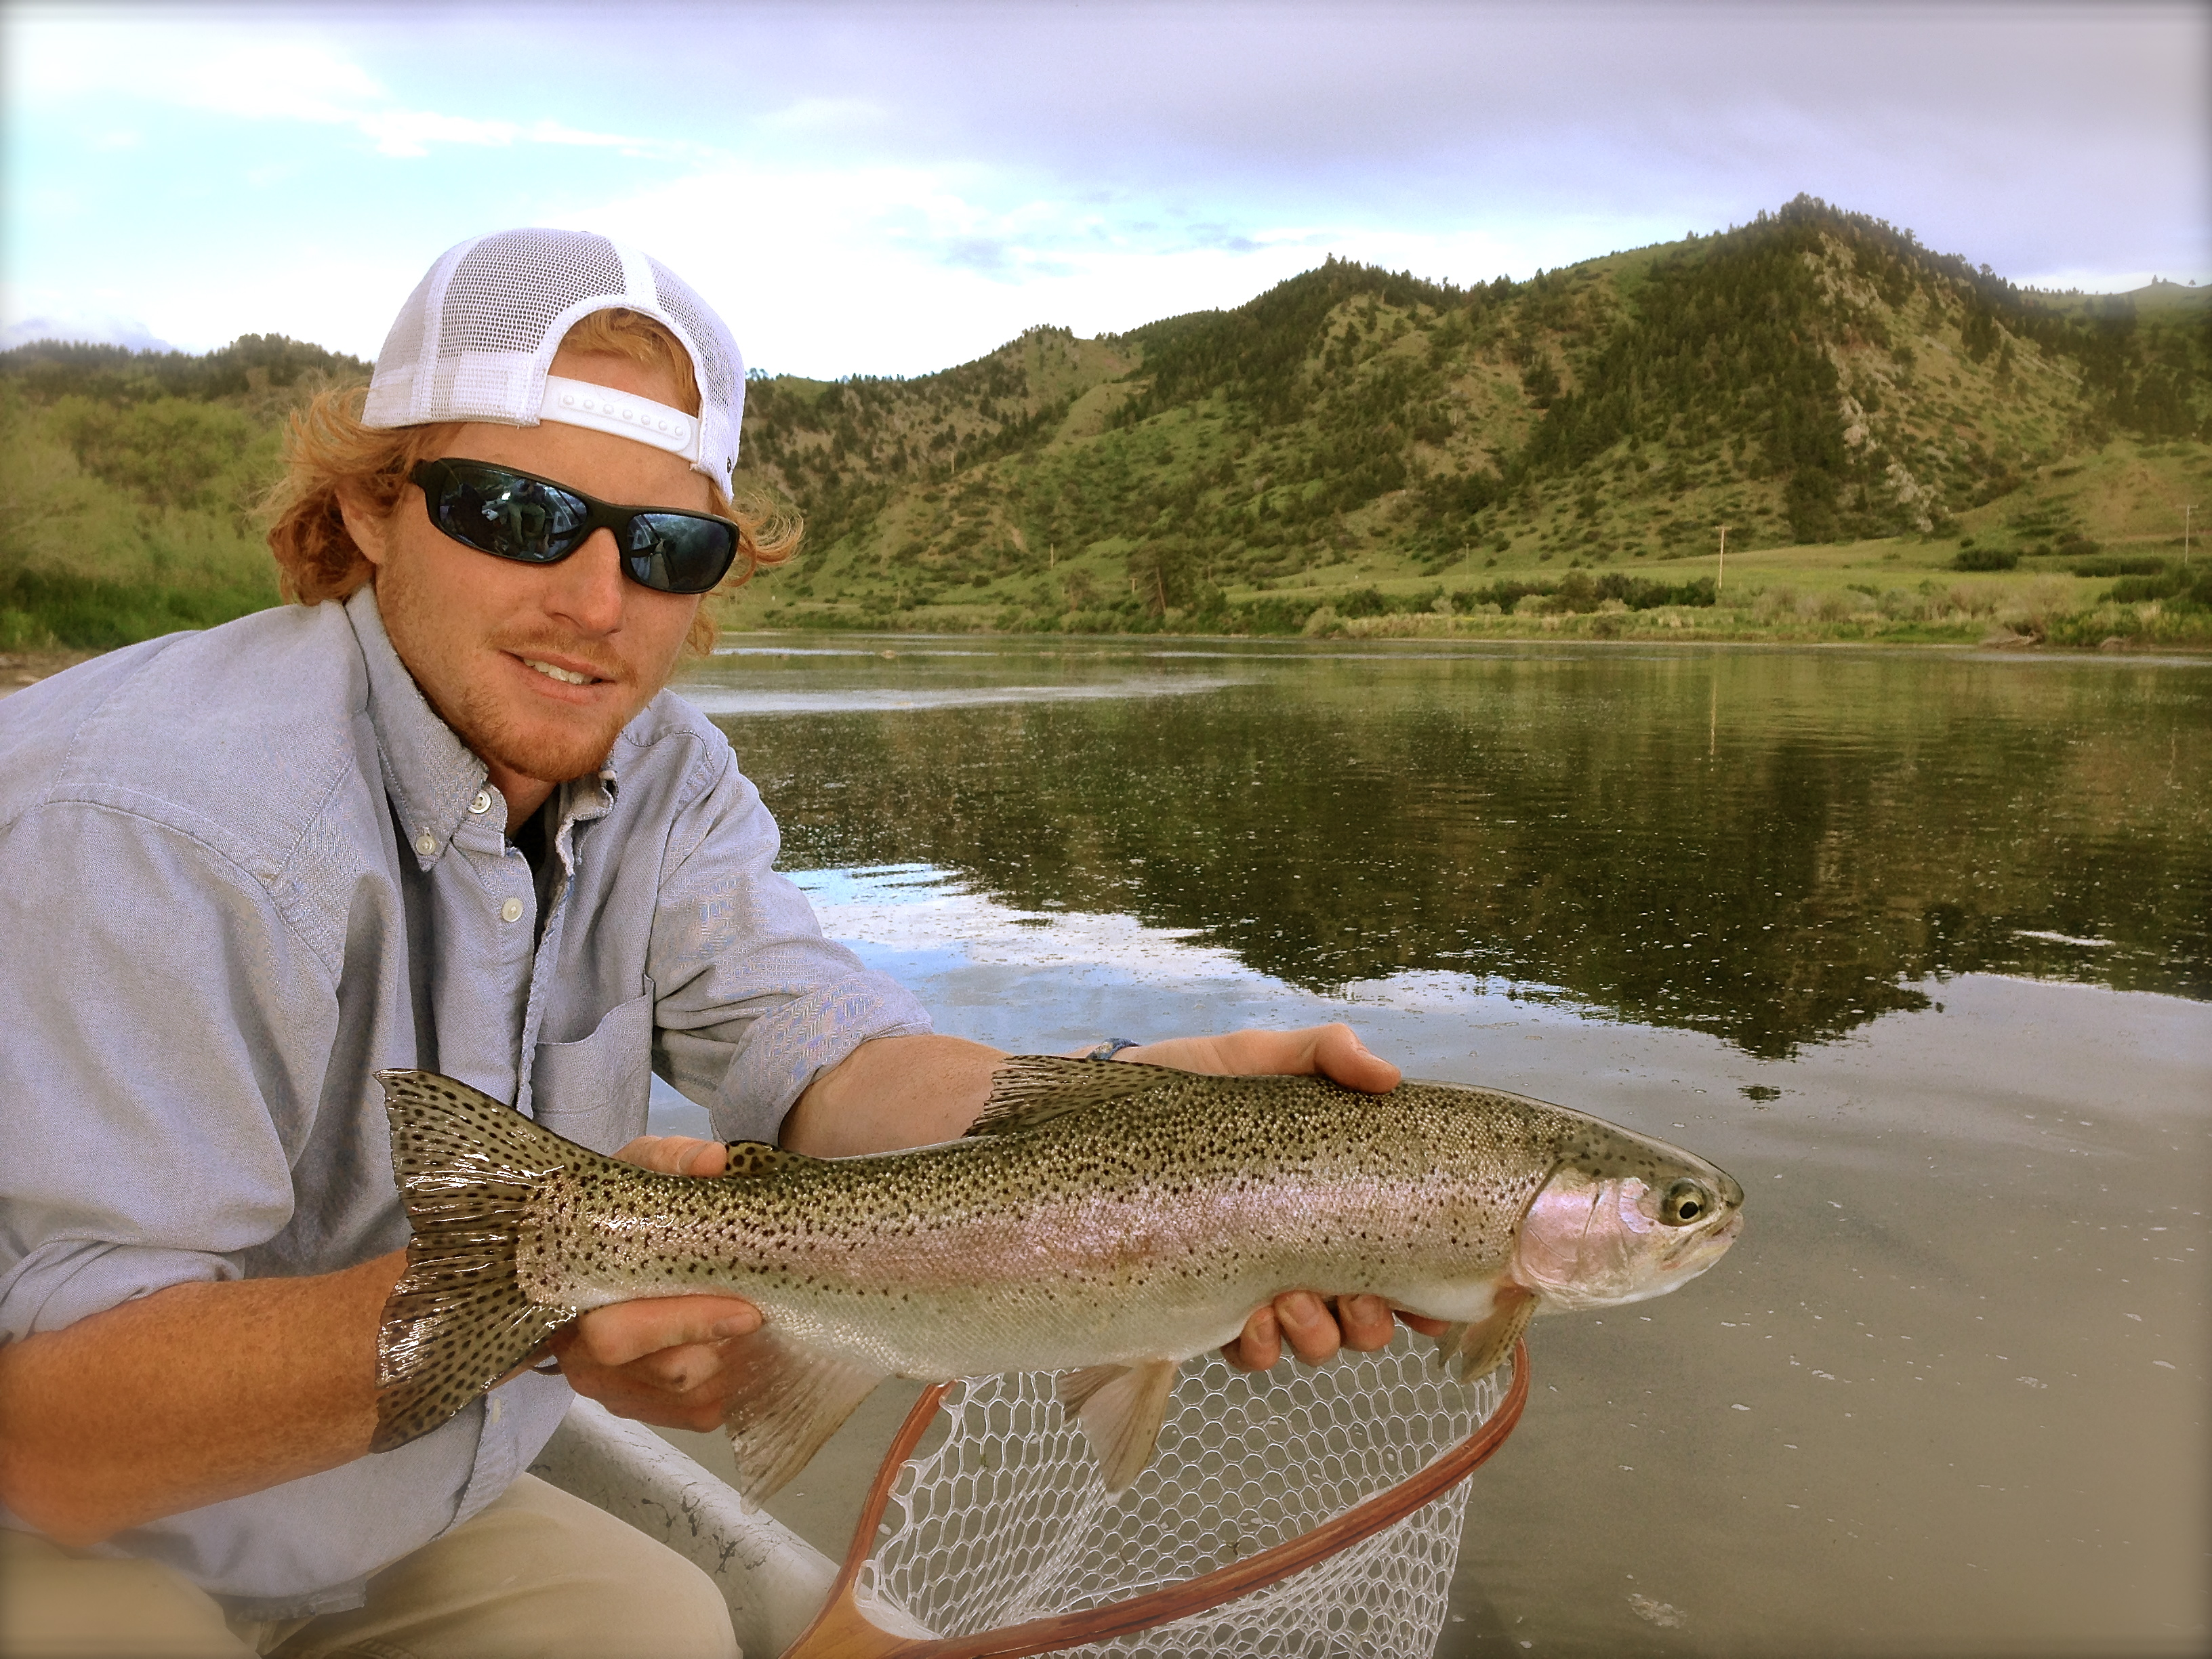 Mo river fishing report 6 22 13 crosscurrents fly shop for Missouri river fishing